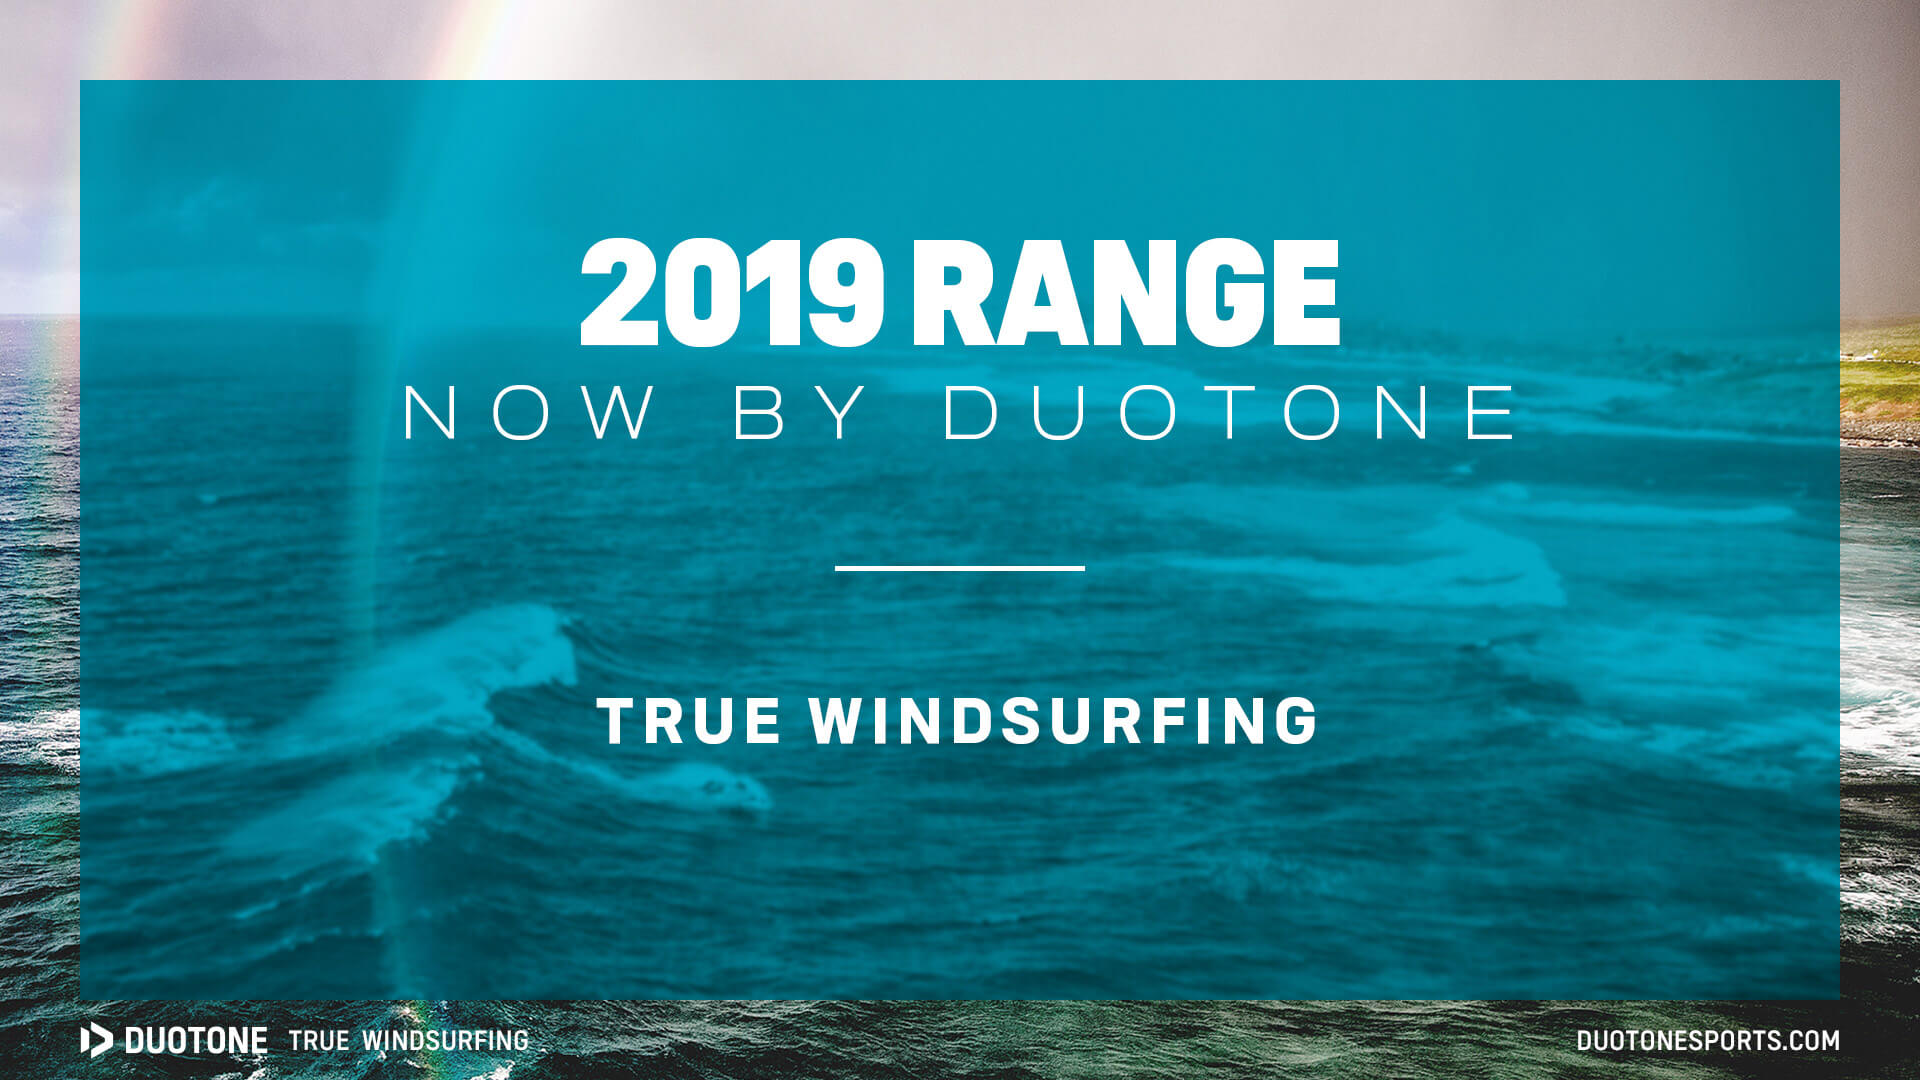 Duotone - Range Highlights 2019